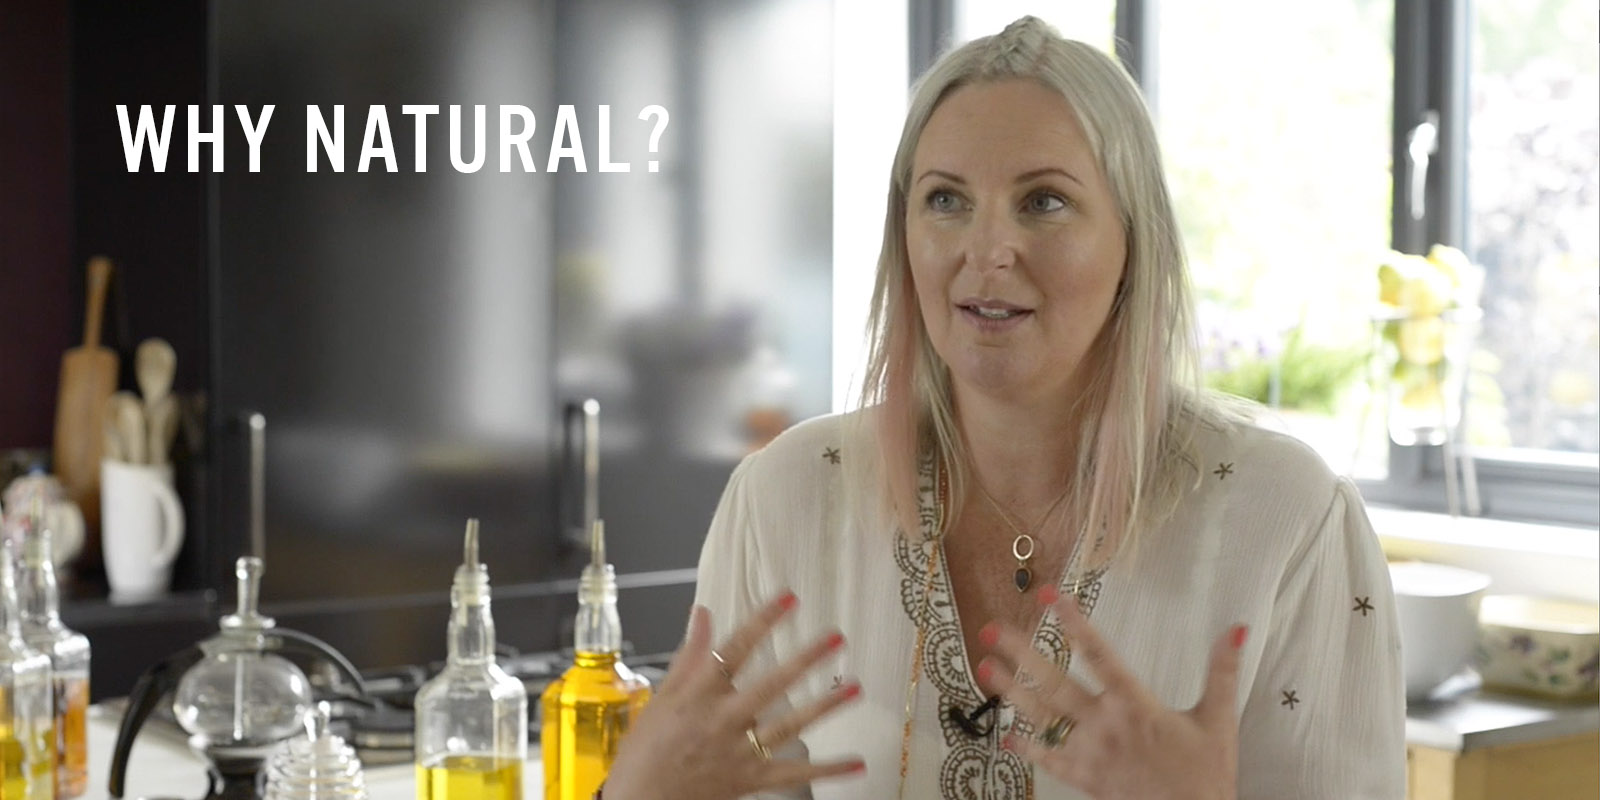 Tabitha explains Why Natural is better for your hair, body and health.